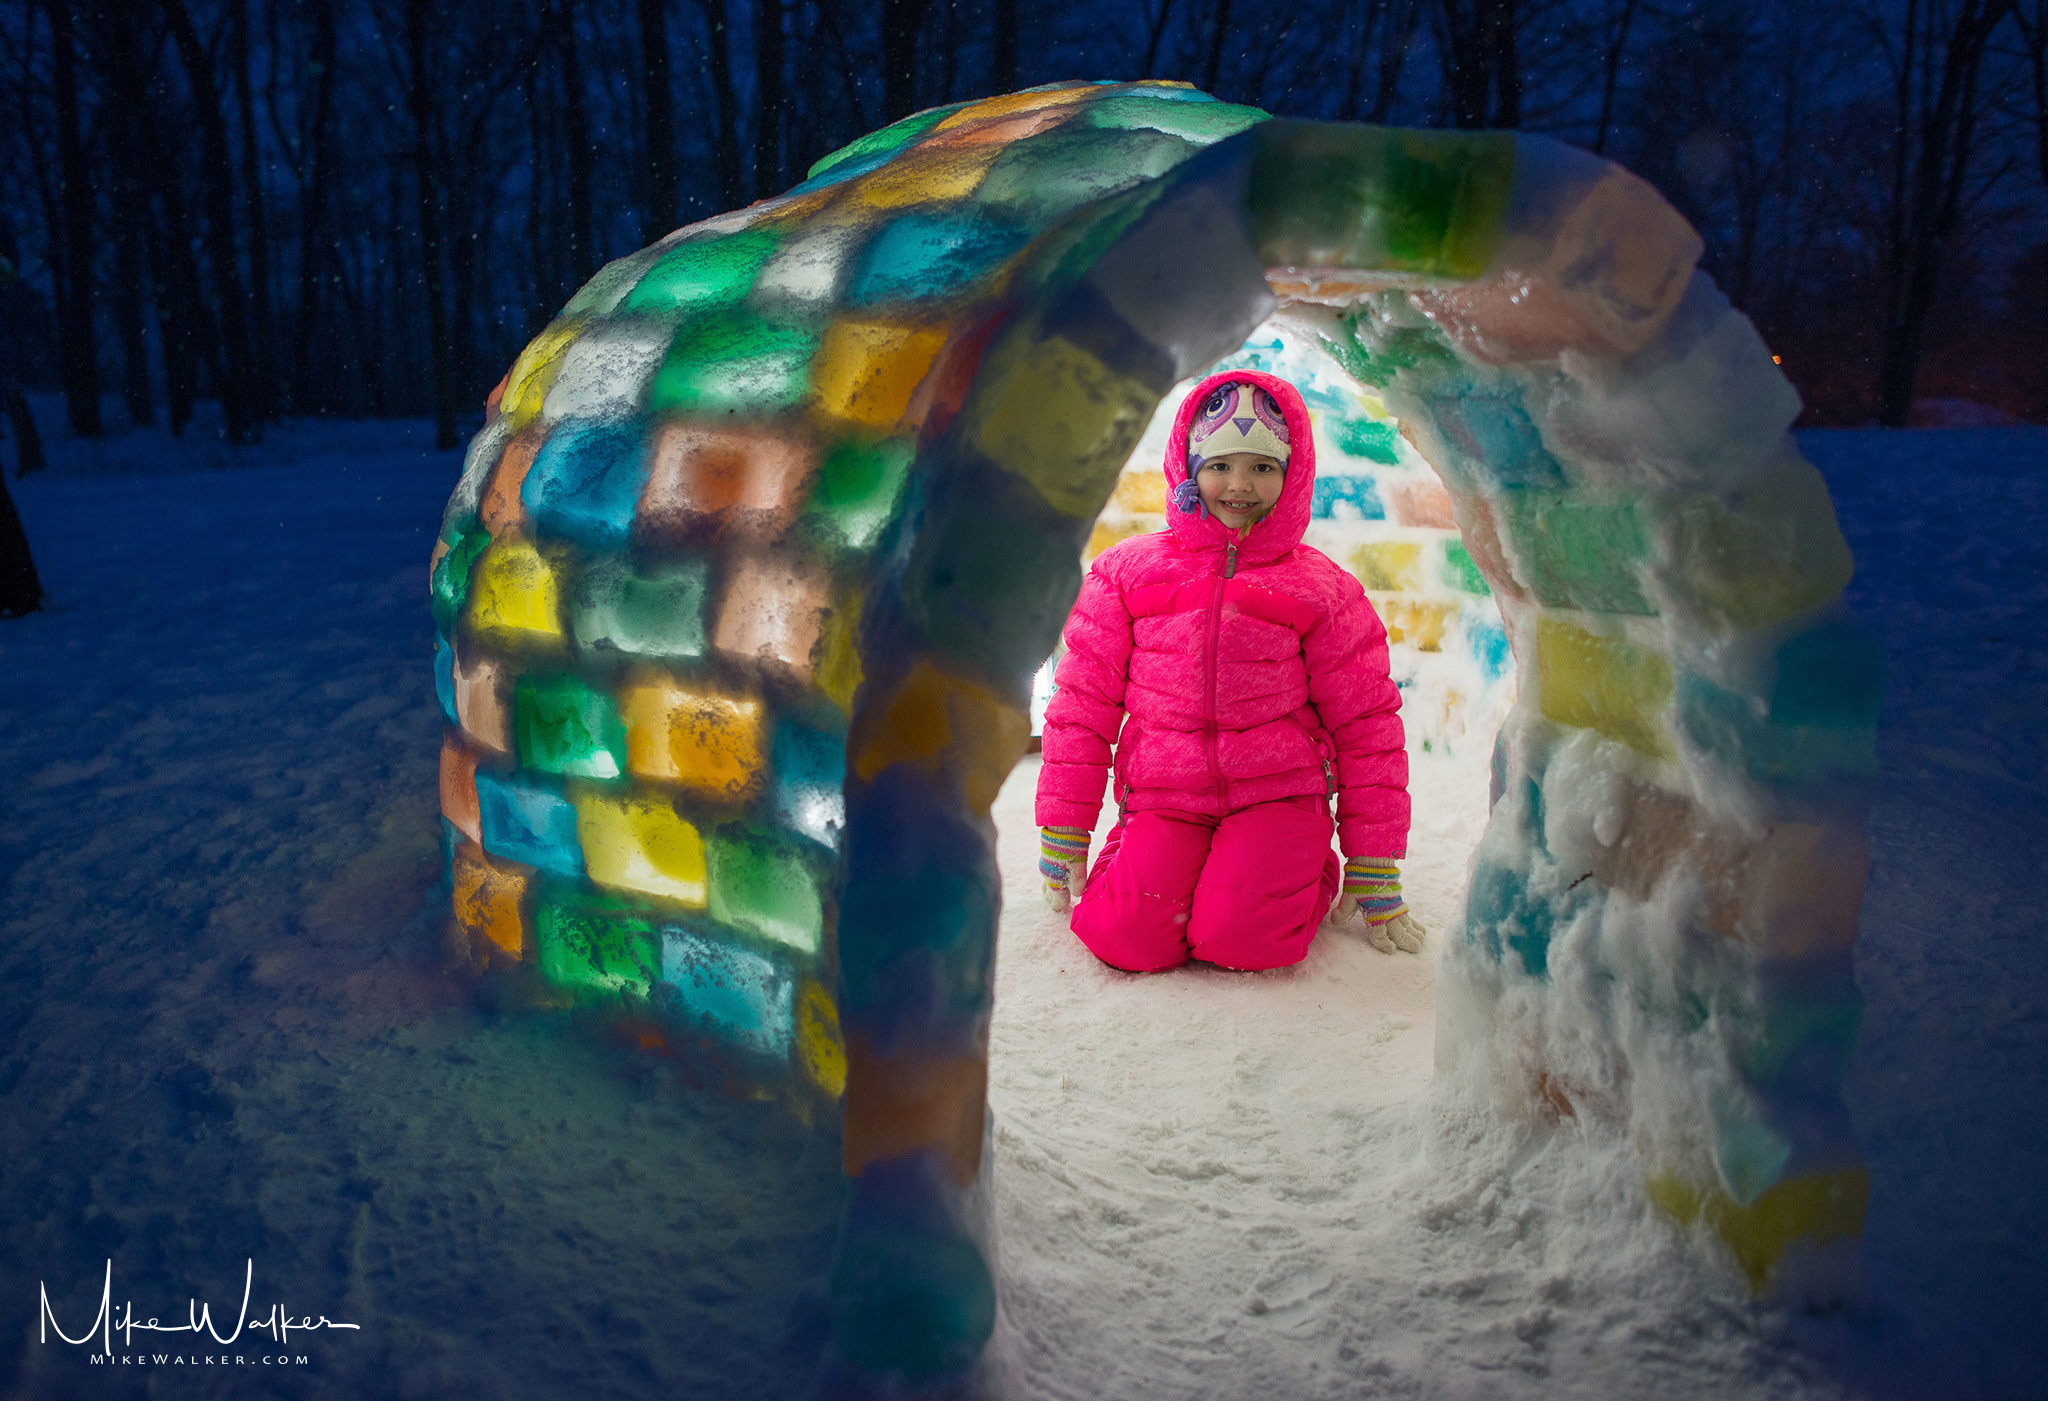 Girl inside an igloo made with colored ice blocks. Family photography by Mike Walker.